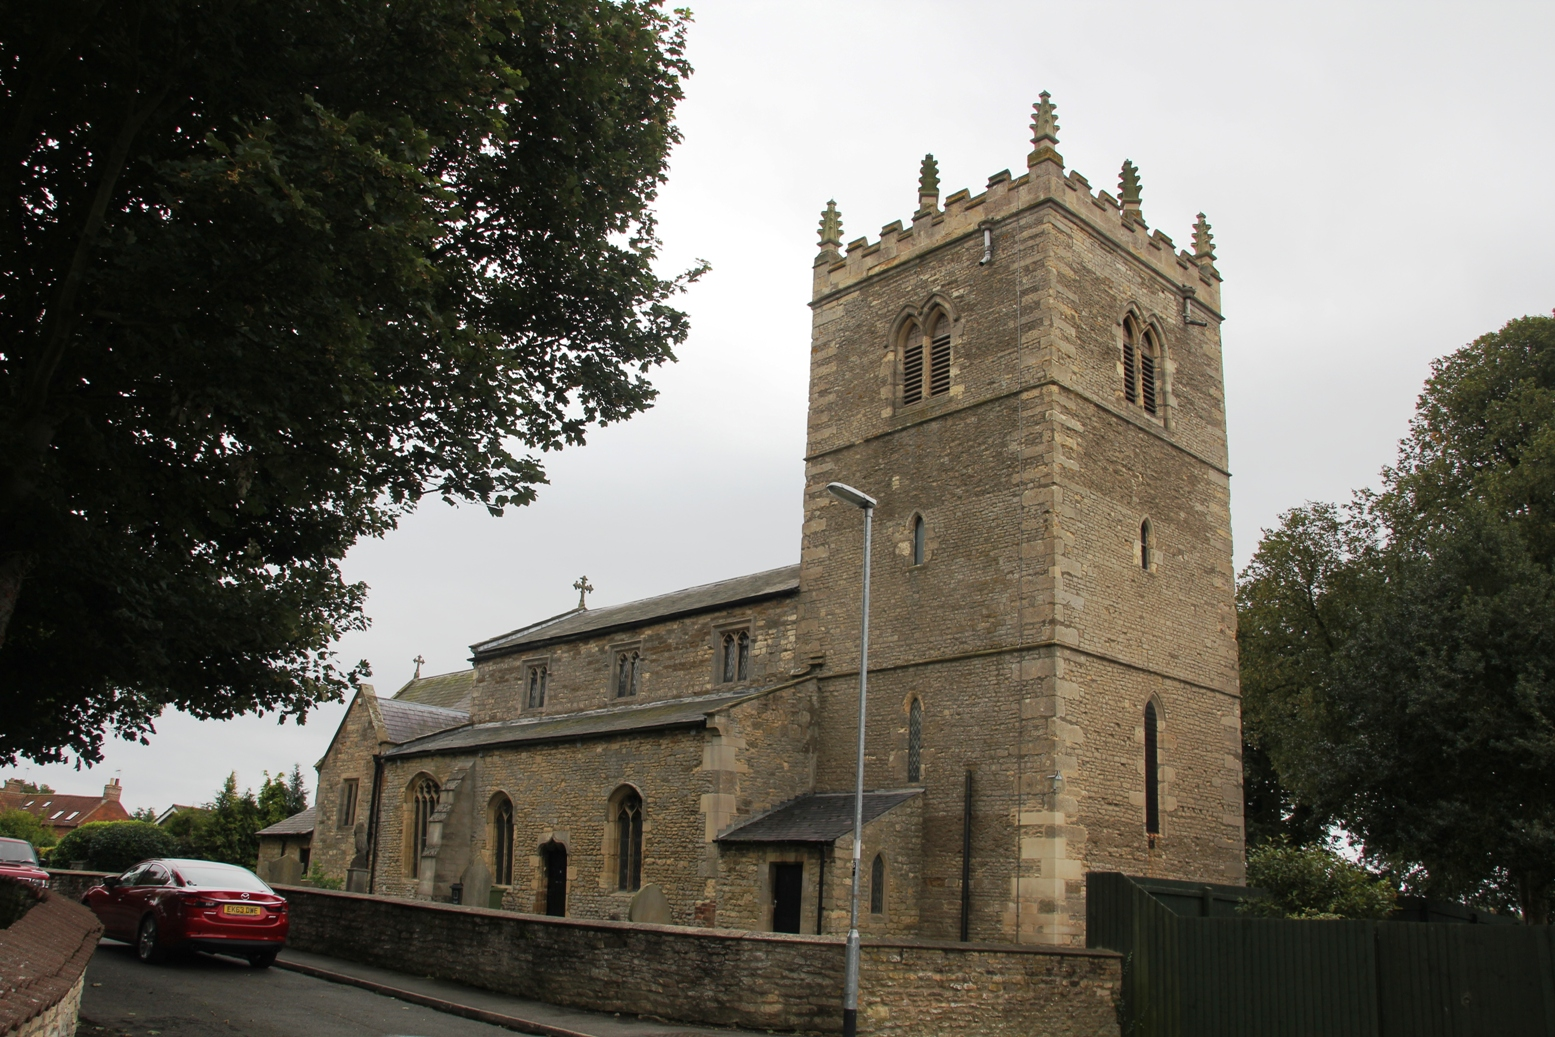 St Chad's Church, Dunholme